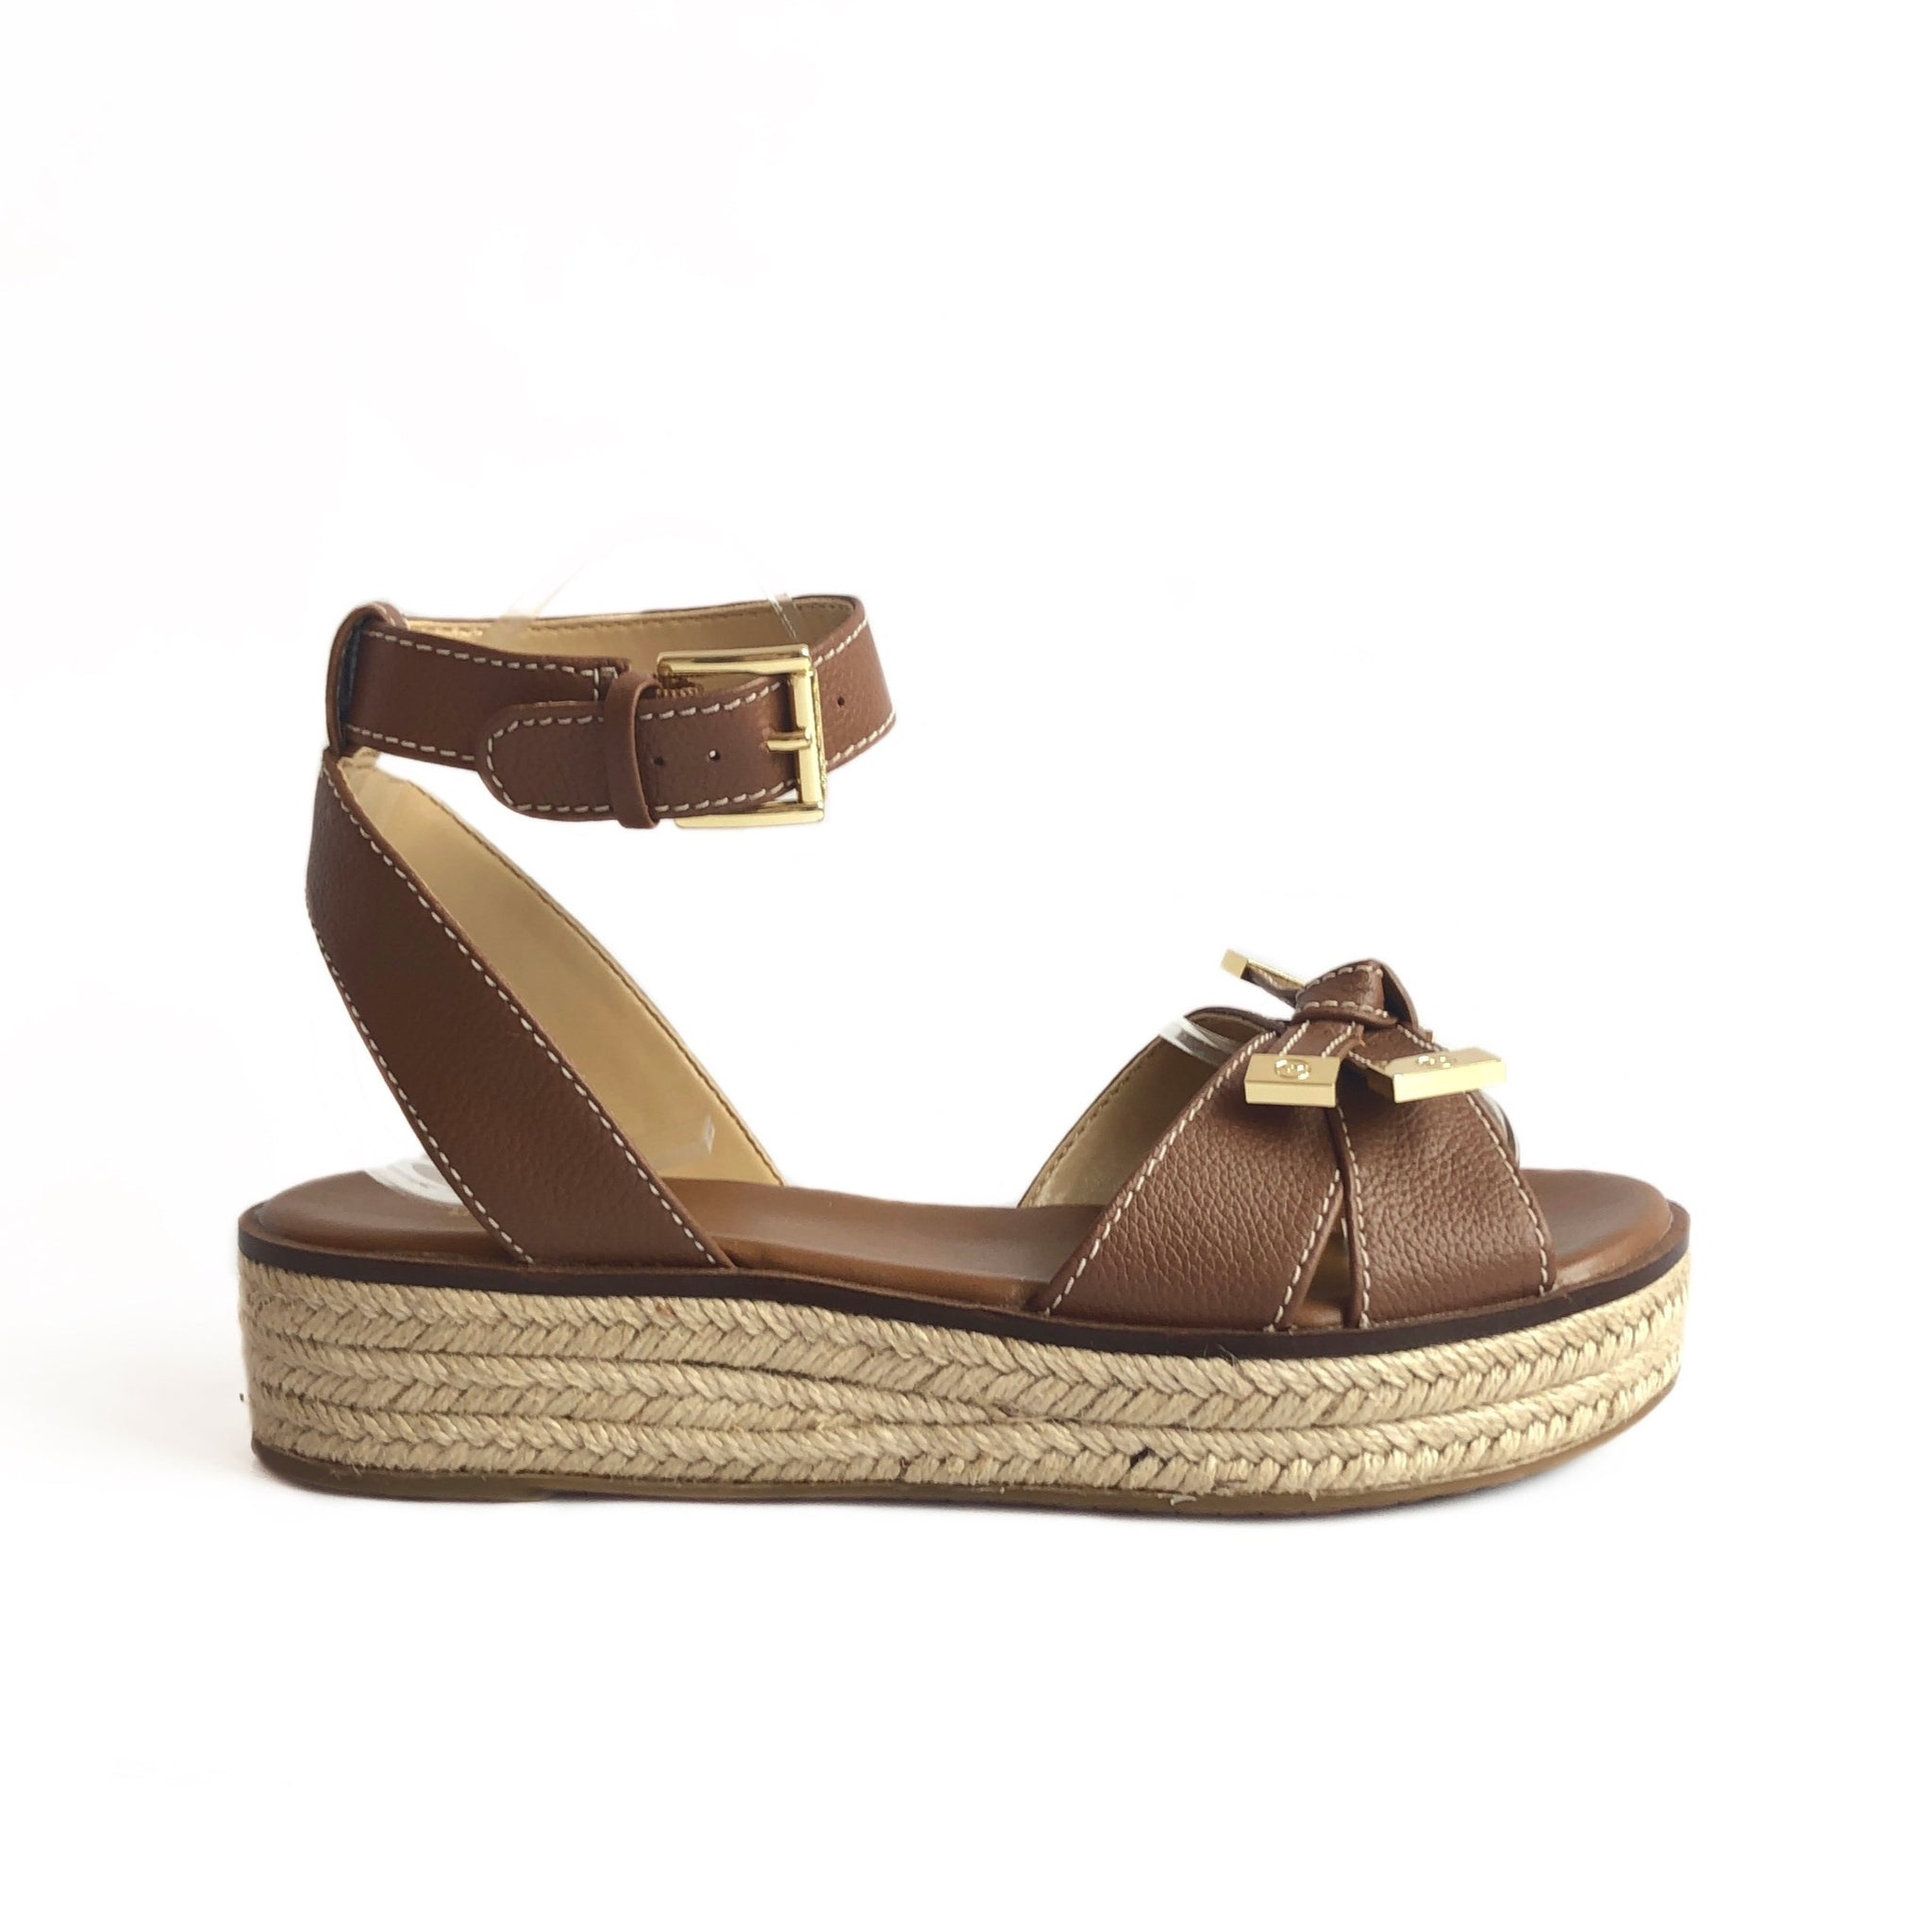 MICHAEL KORS - RIPLEY SANDAL IN LUGGAGE